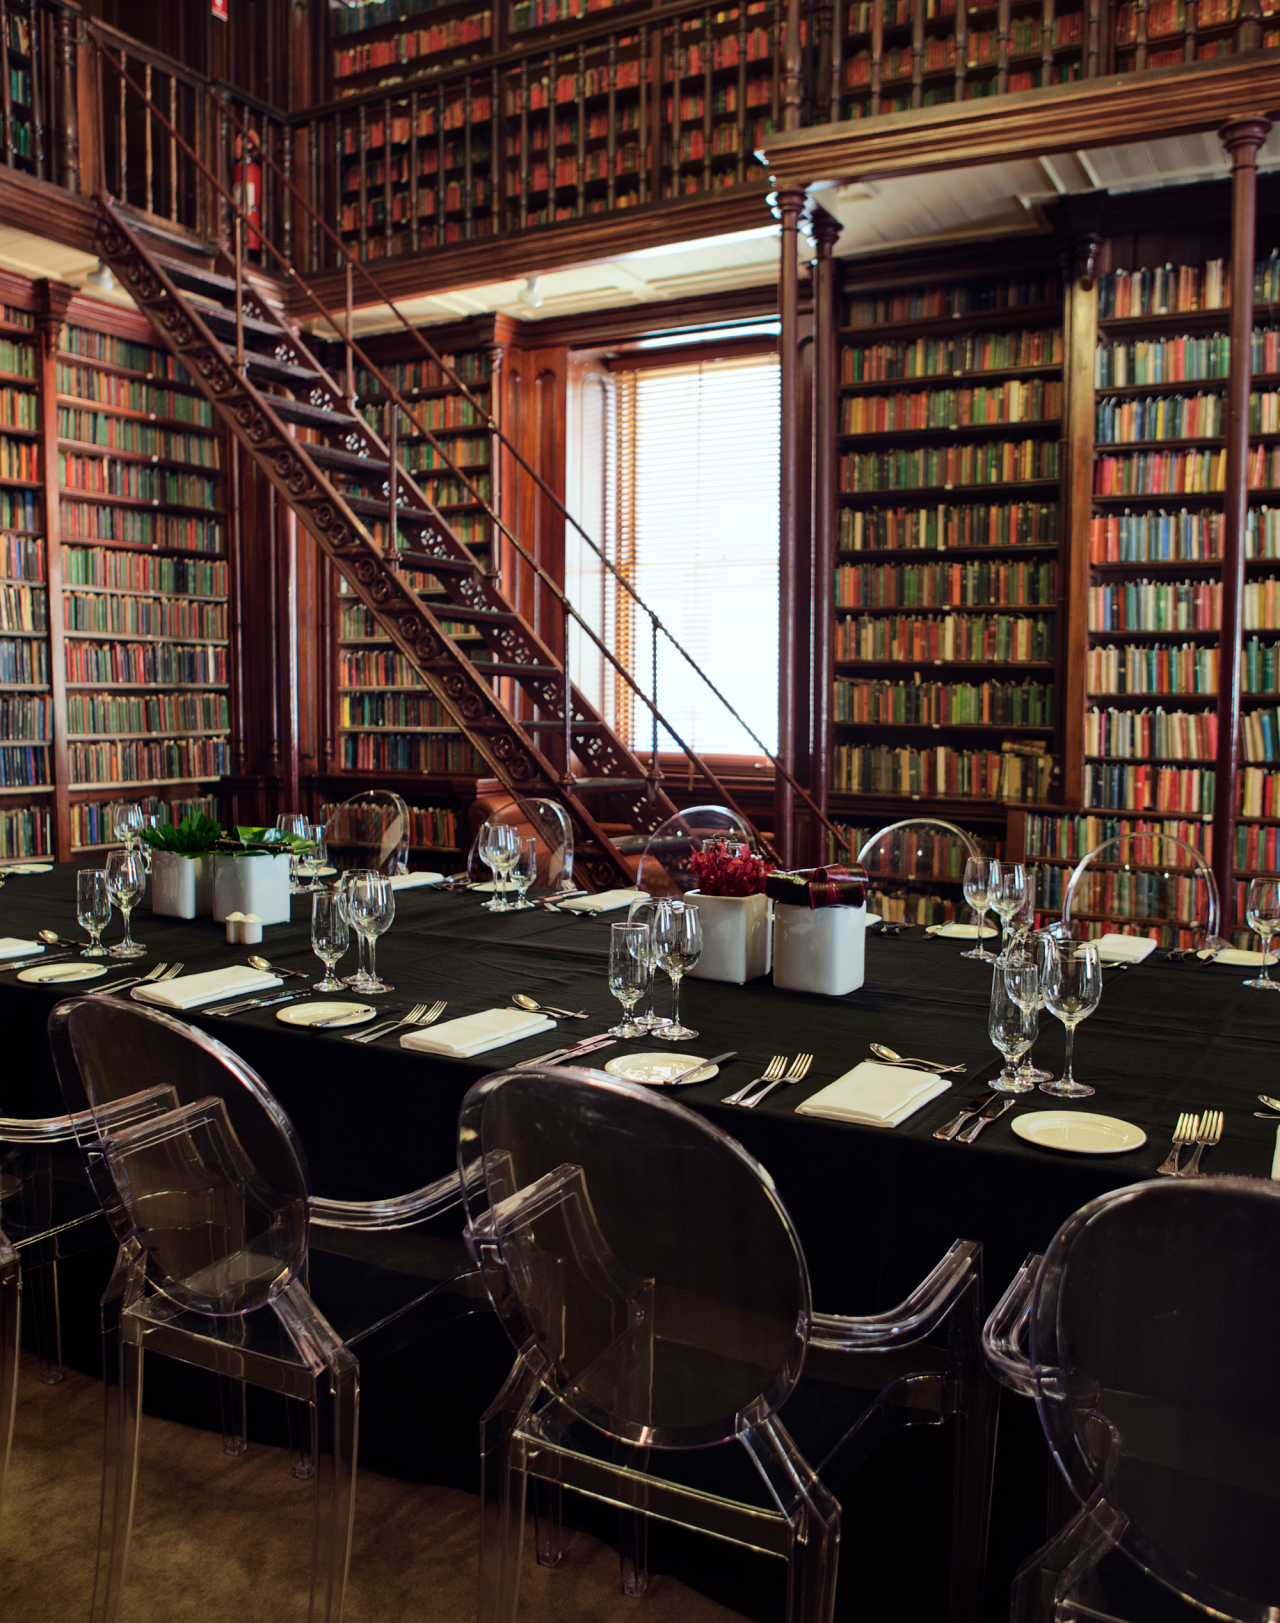 Circulating Library, dinner seating